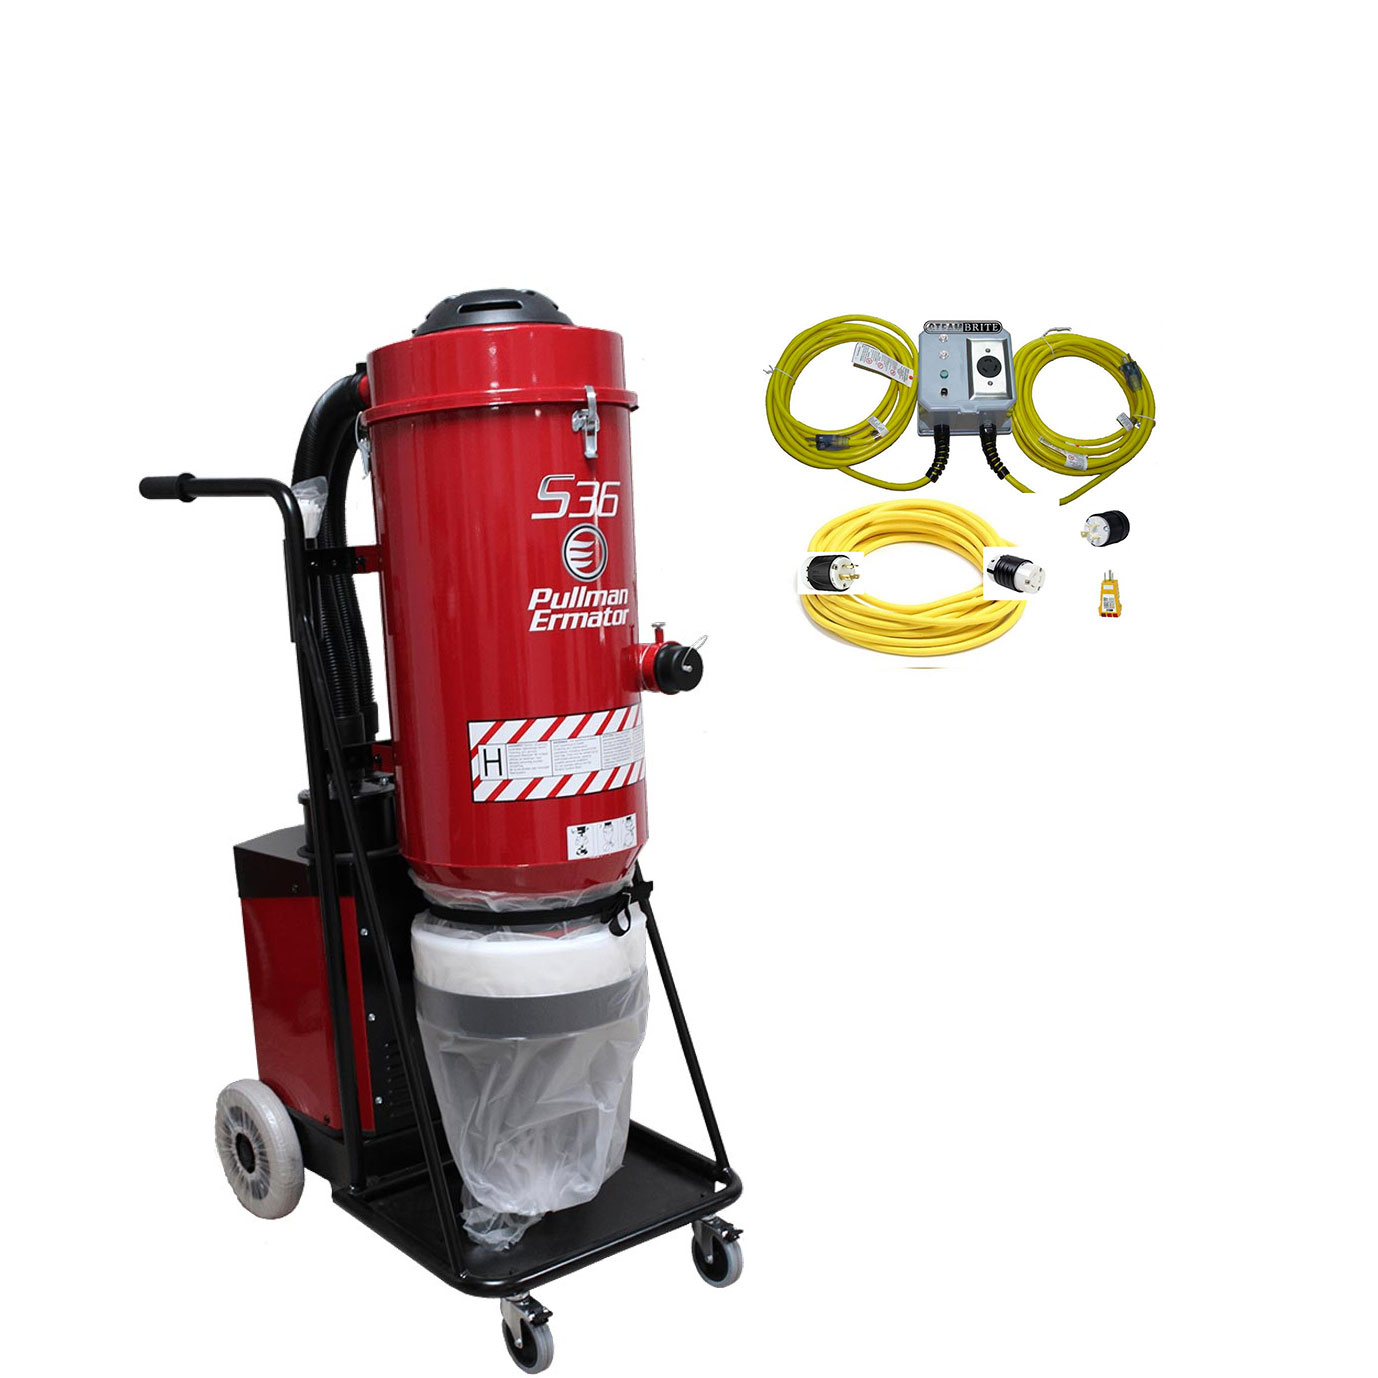 Husqvarna Pullman Ermator S36 Hepa Vacuum 240V 14Amp 353Cfm Dust Collector Power Supply 967818001 Bundle [69654895] Freight Included HTC D30